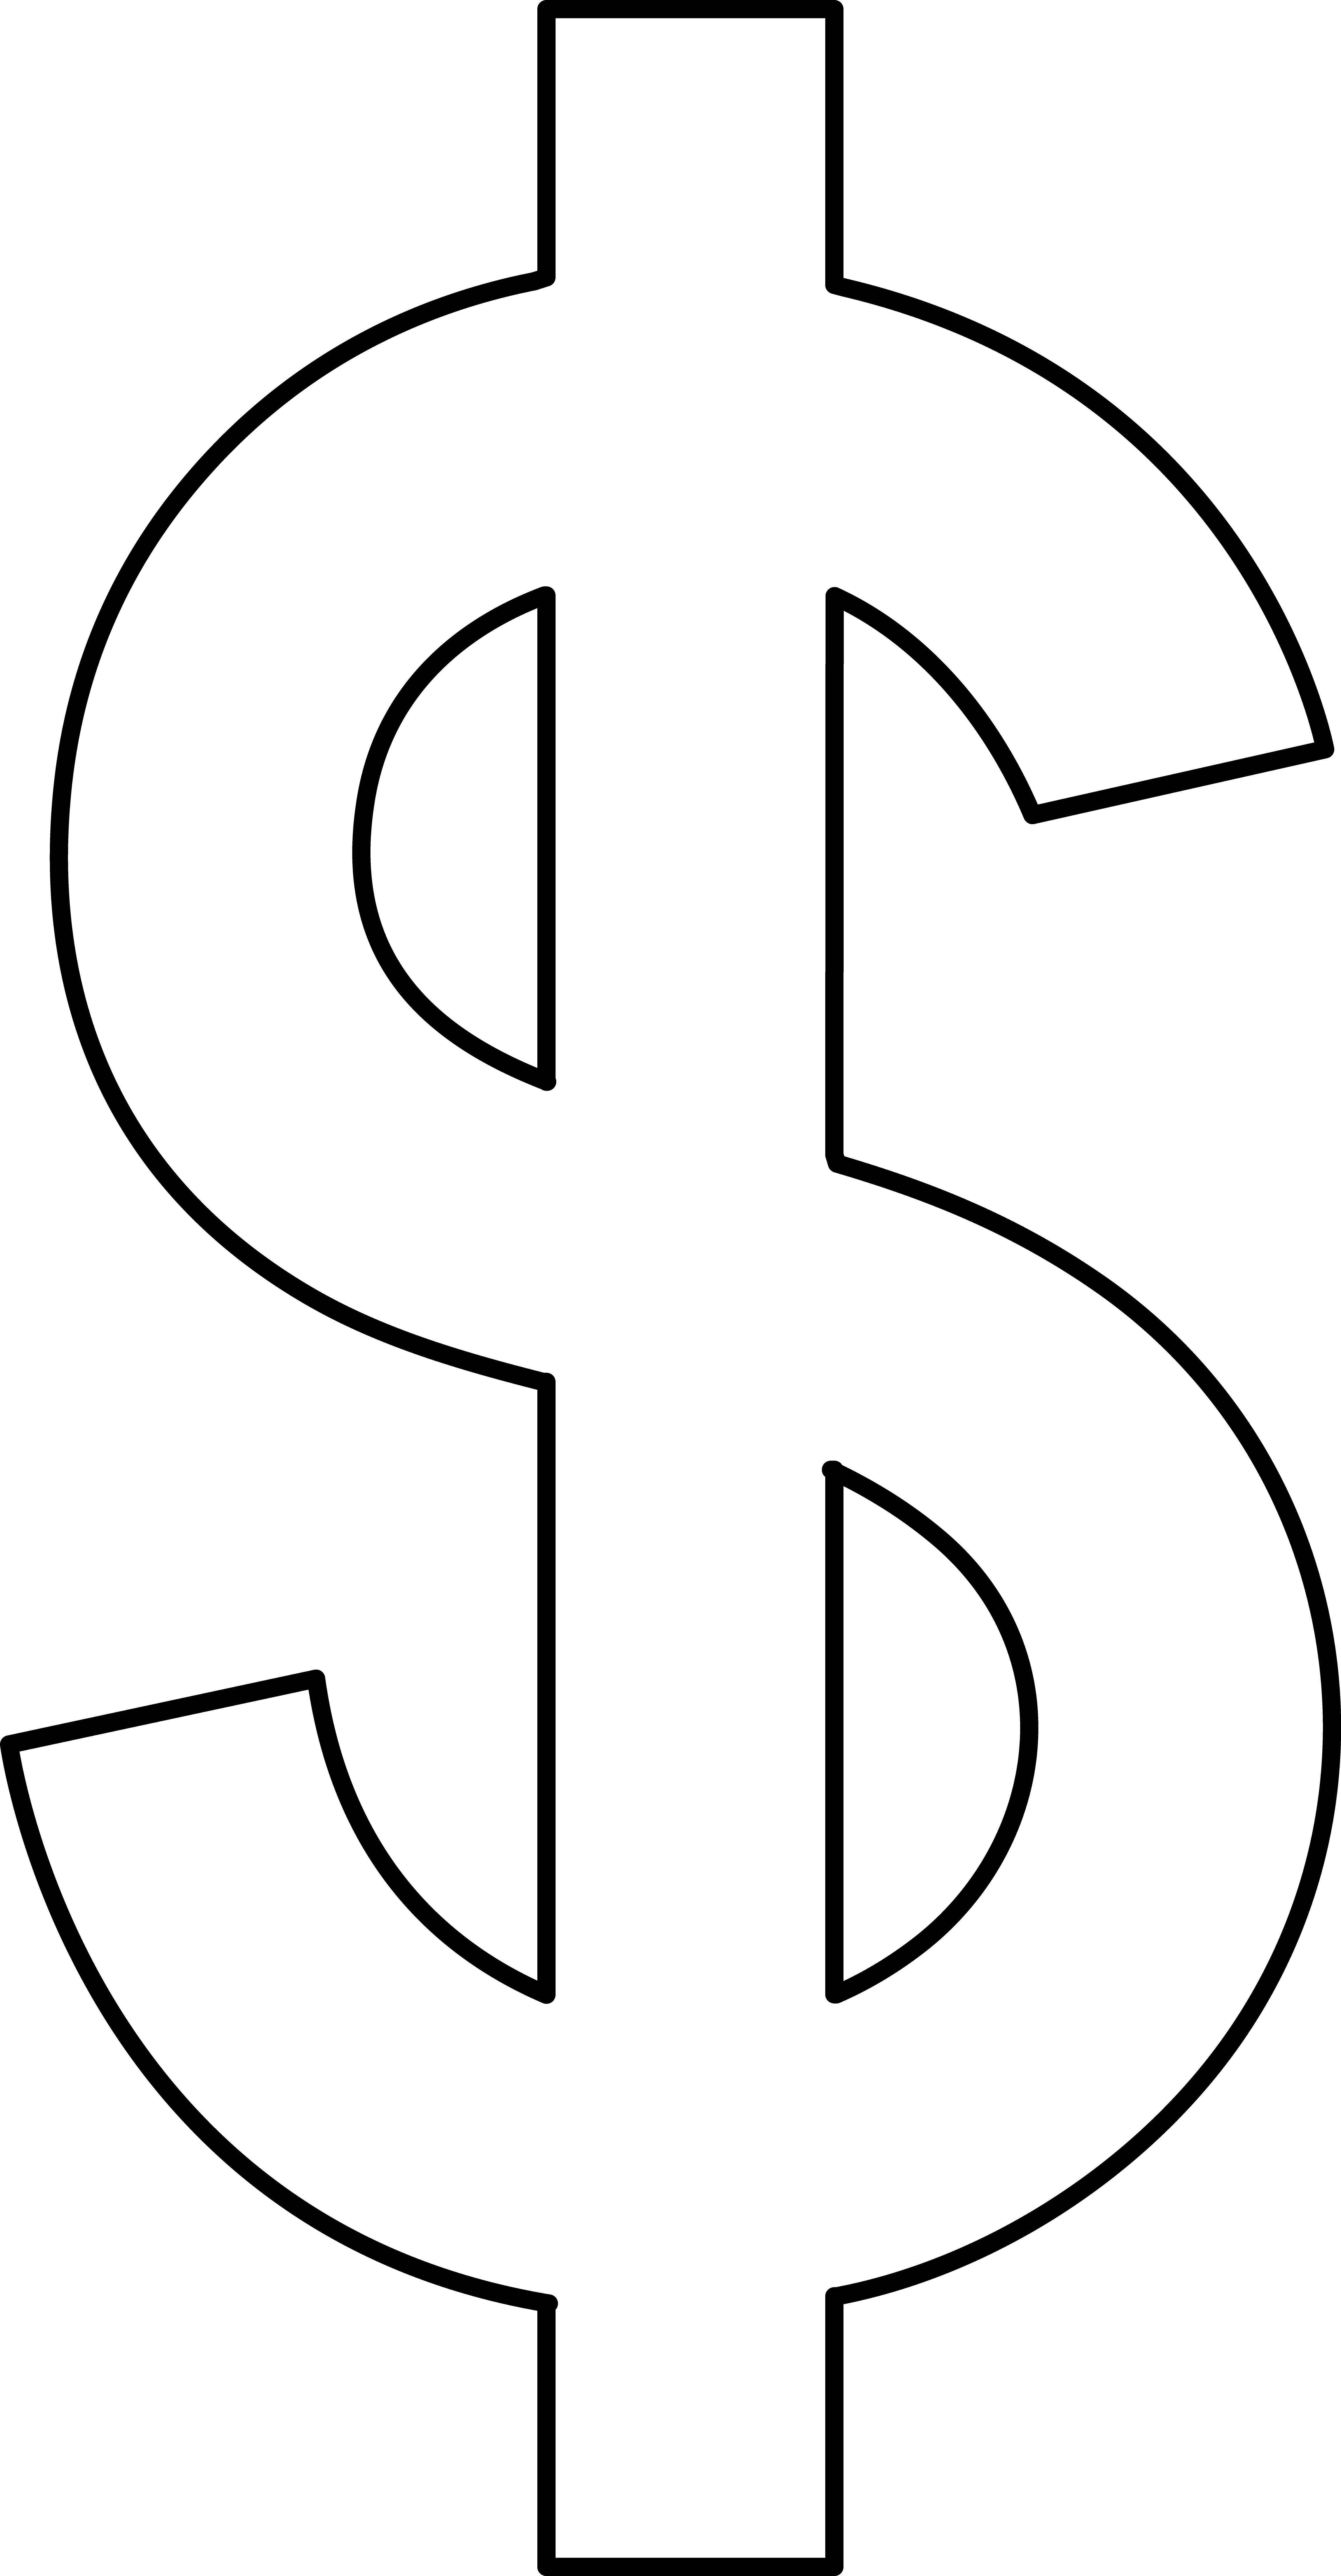 Dollar sign icon clipart transparent download Free Dollar Sign Image, Download Free Clip Art, Free Clip Art on ... transparent download